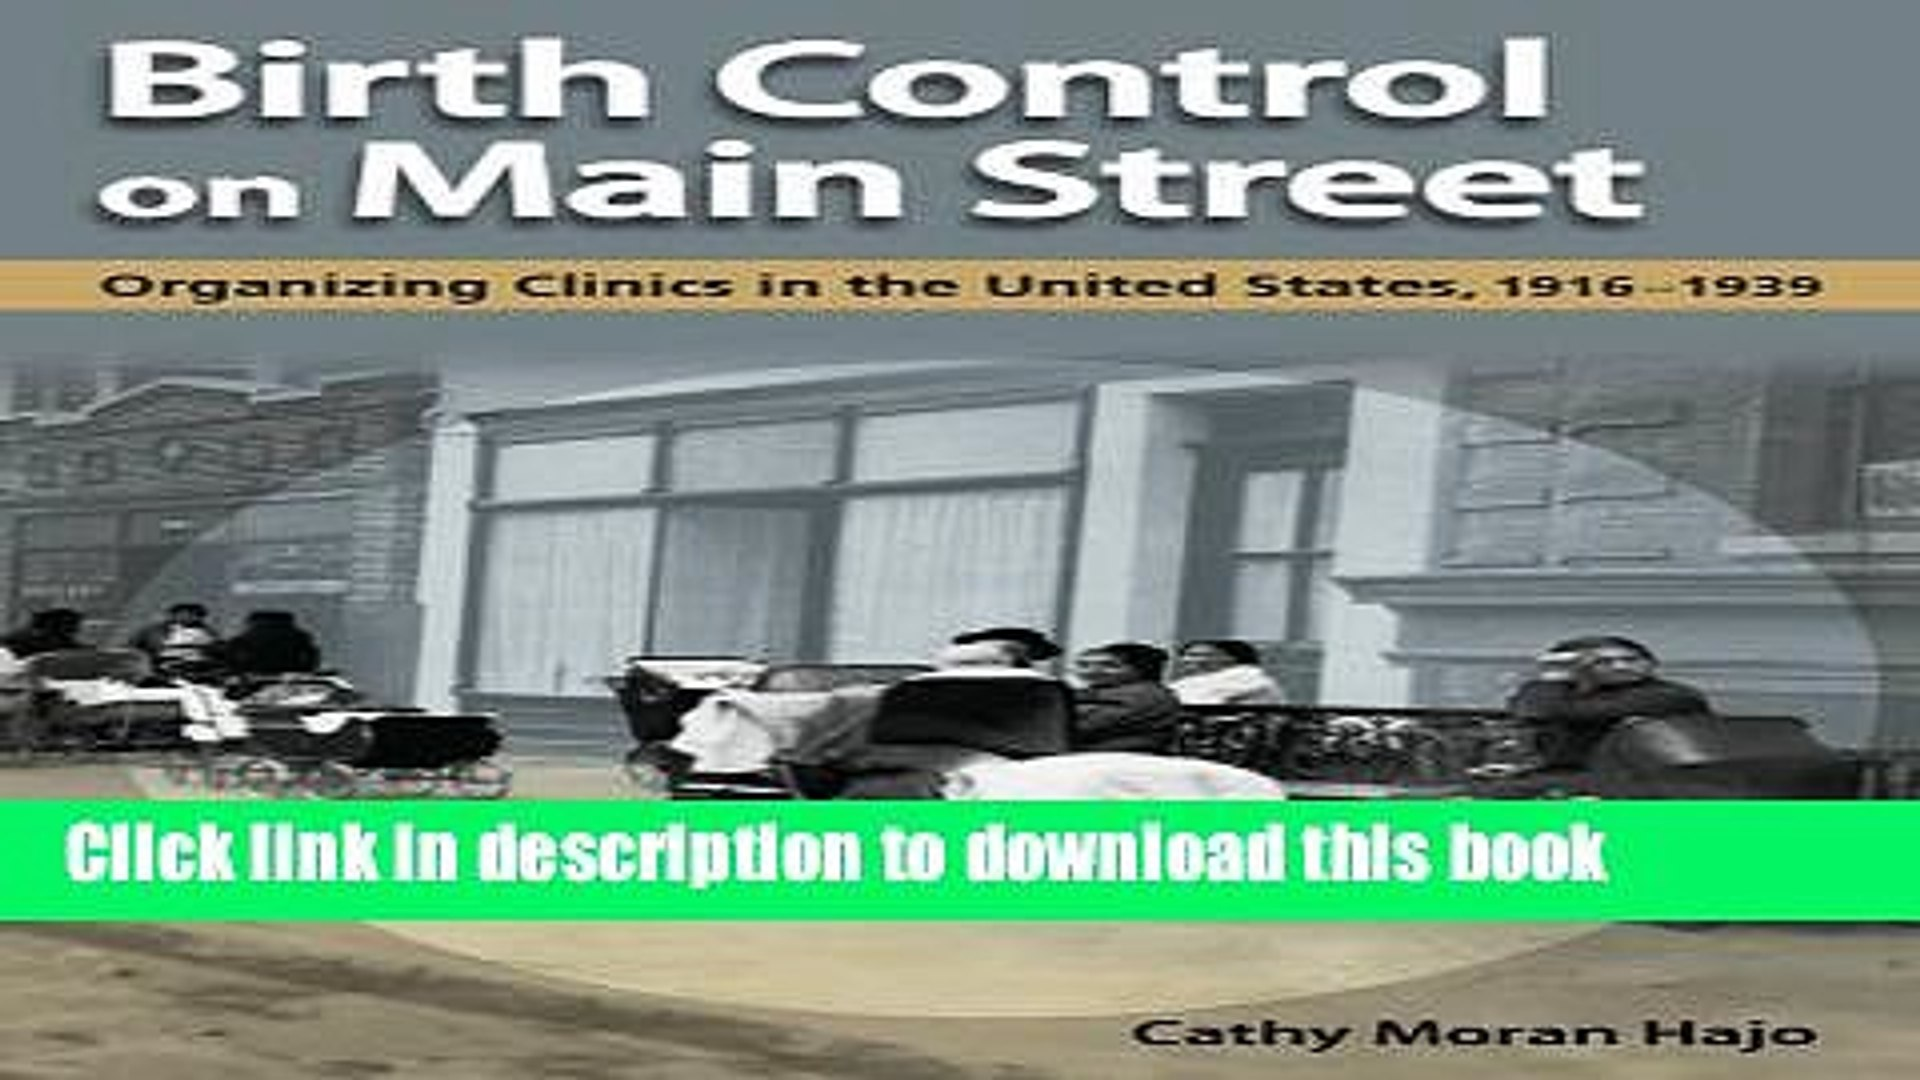 [PDF] Birth Control on Main Street: Organizing Clinics in the United States, 1916-1939 [Read] Online